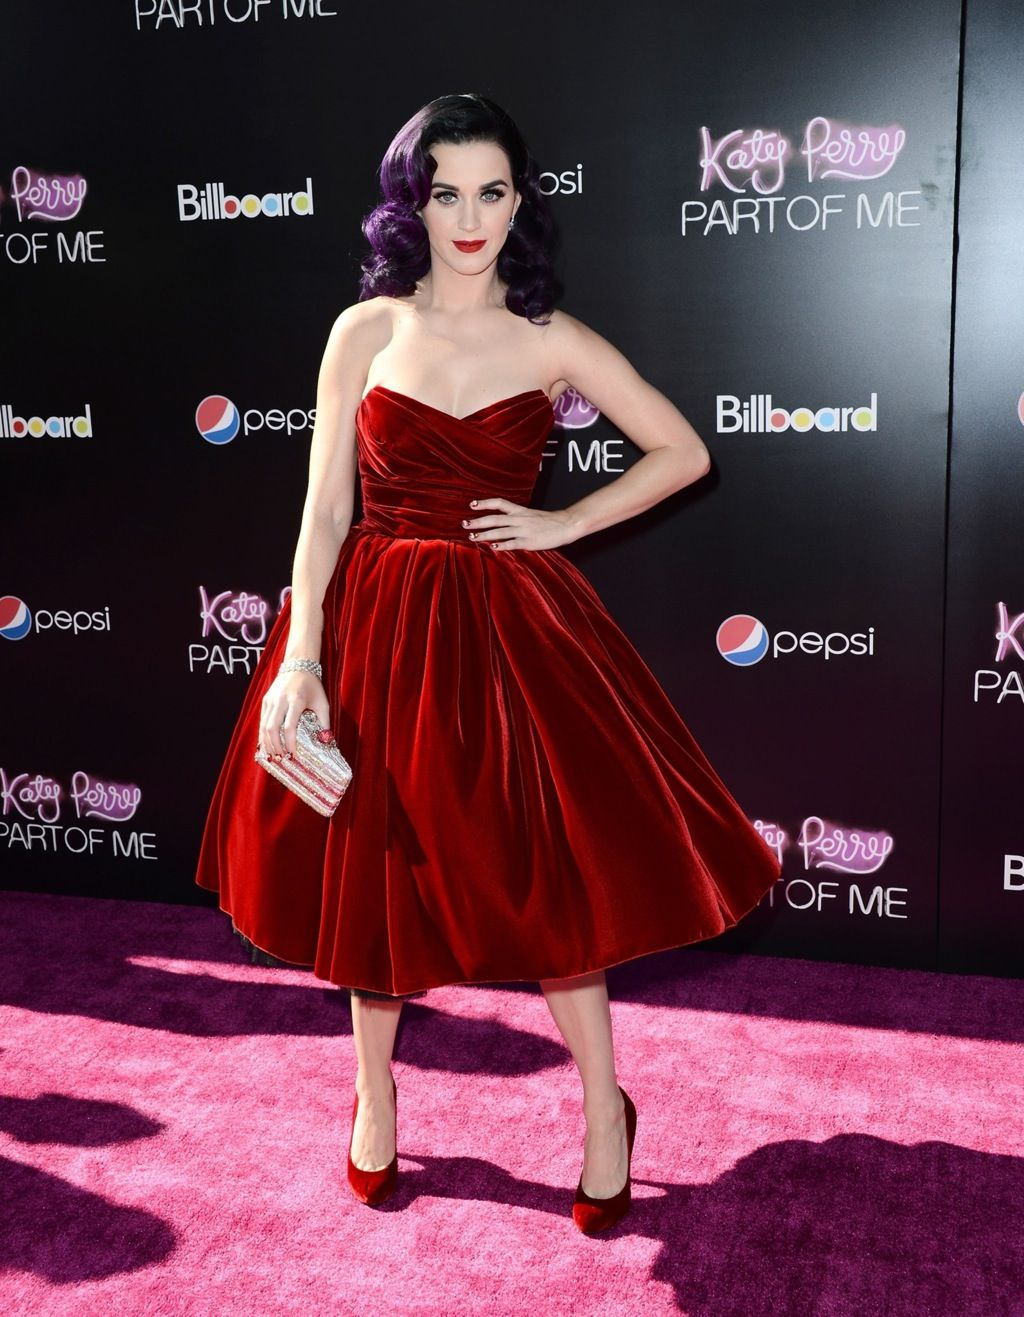 ... vintage inspired cocktail dresses for your next party. Katy Perry ba7e596bbdf8